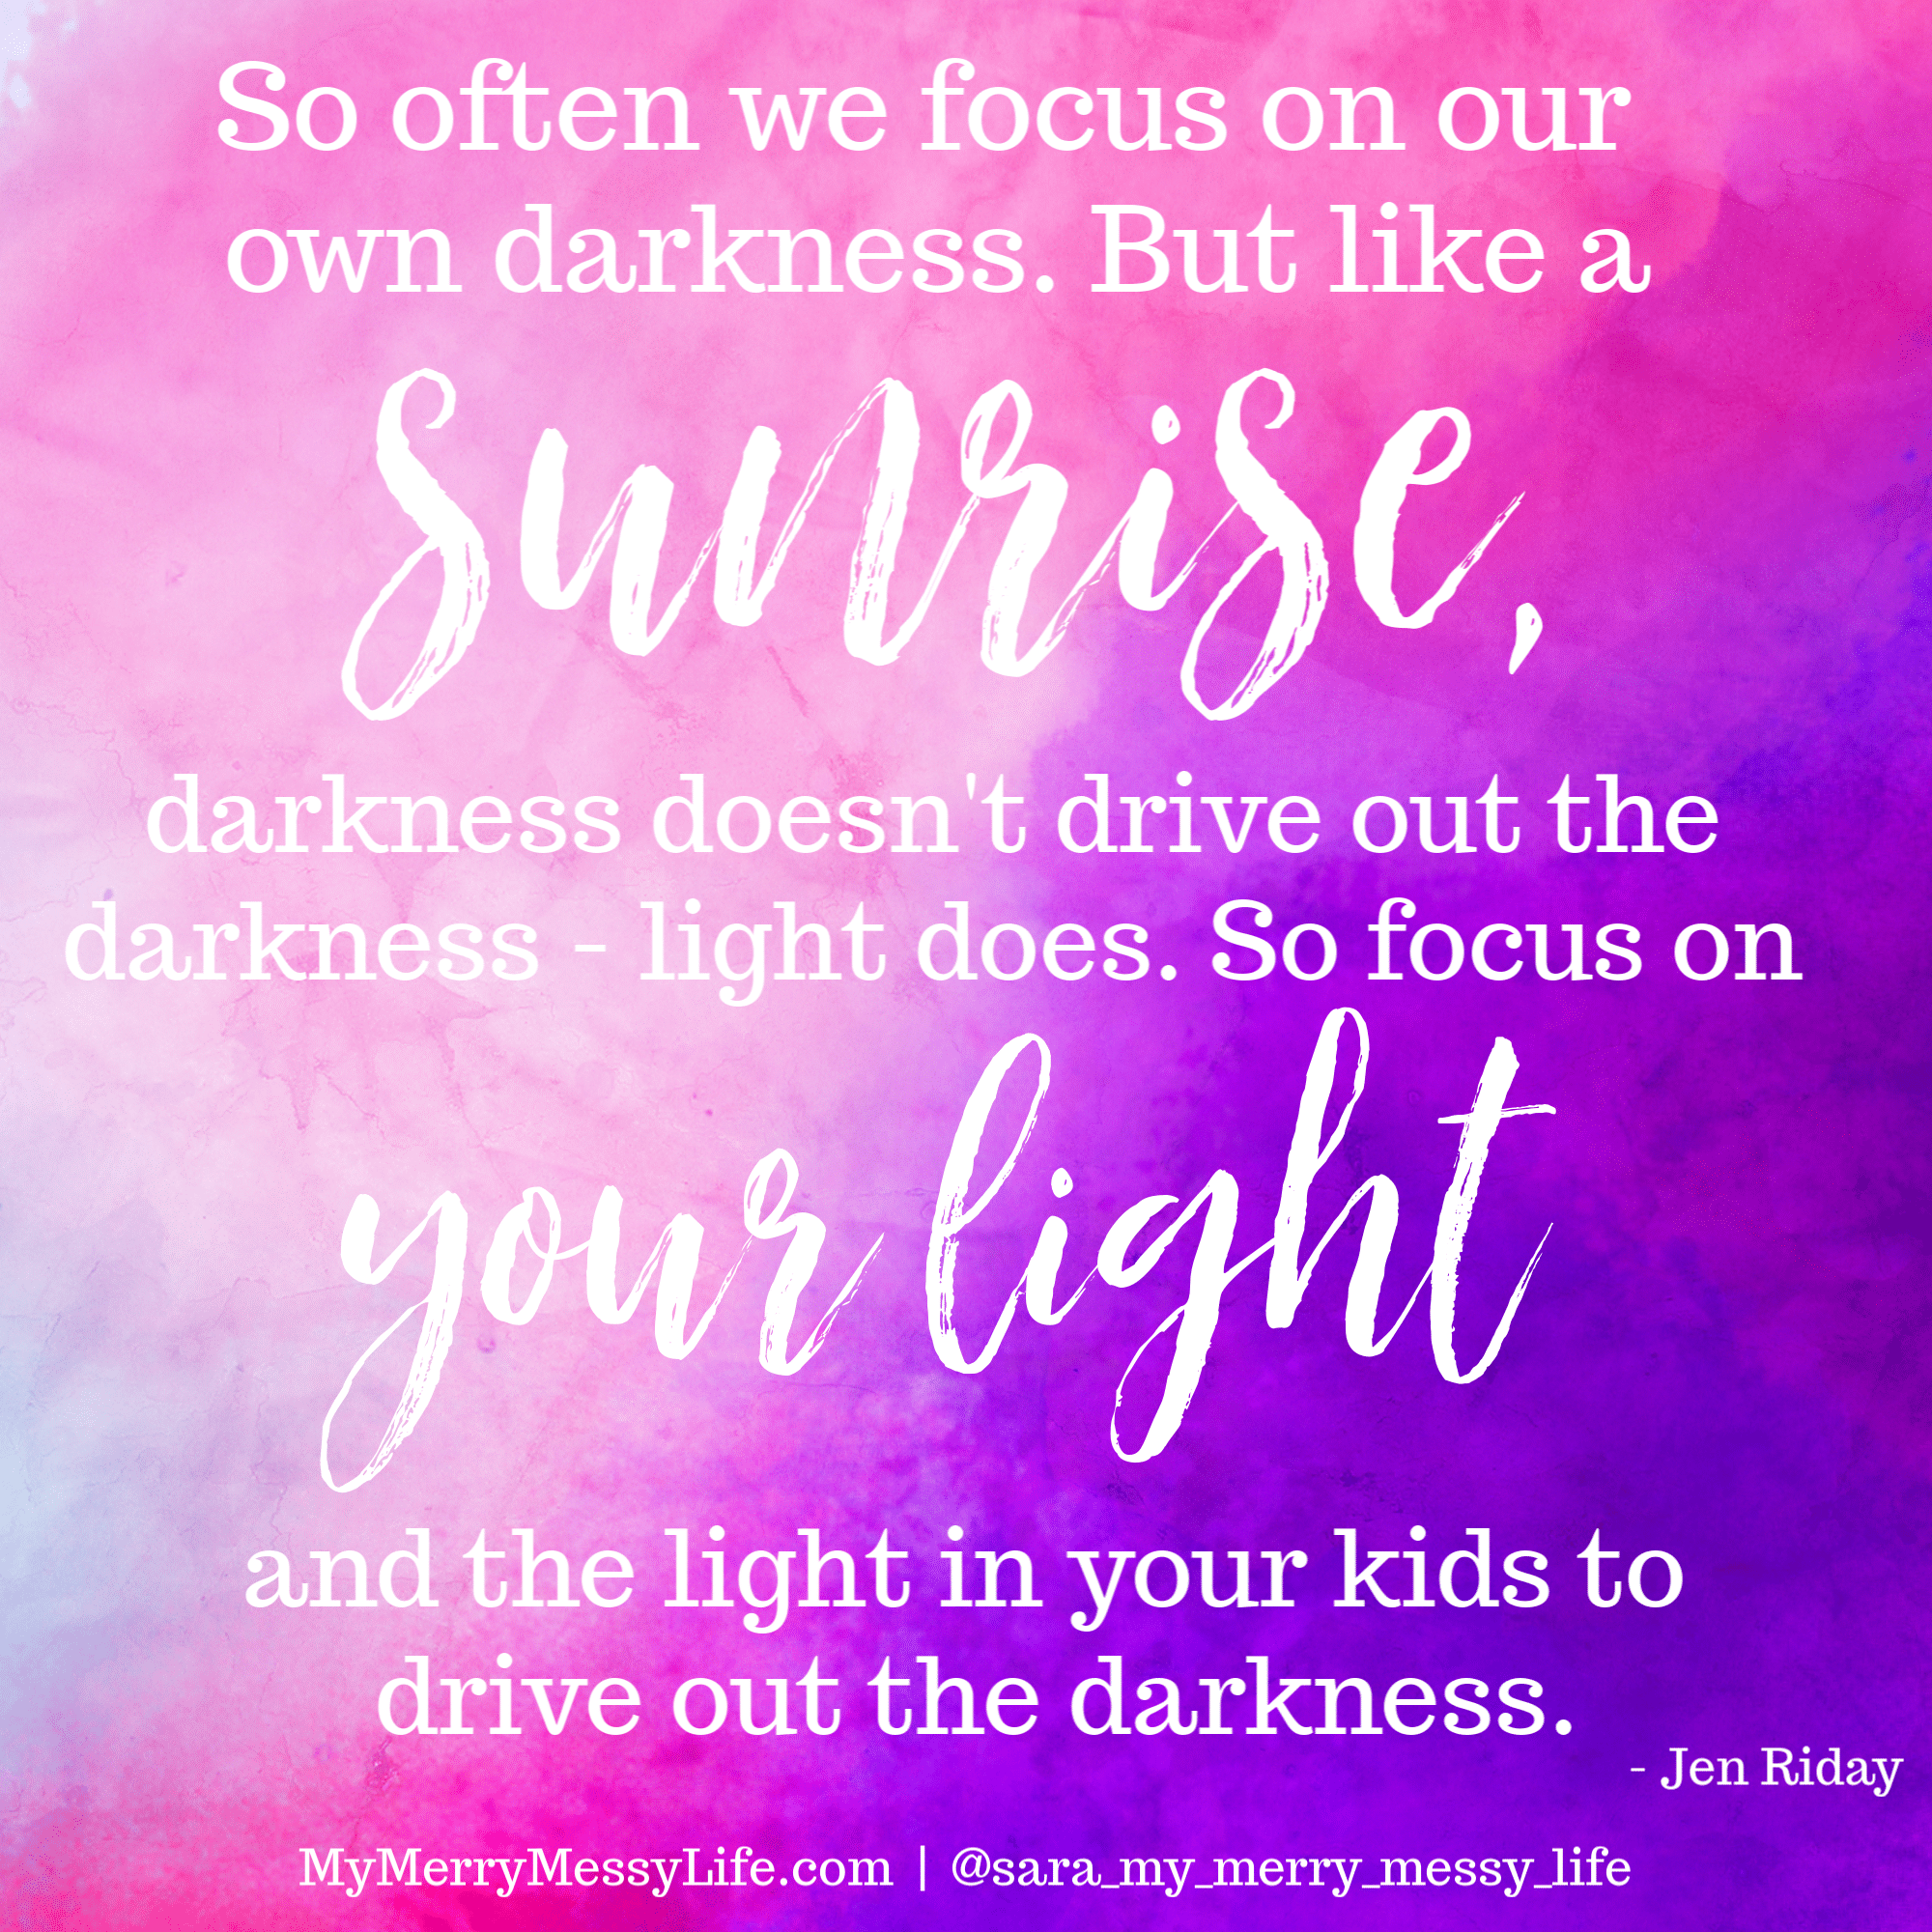 So often we focus on our darkness. But like a sunrise, darkness doesn't drive out darkness - light does. So focus on your light and the light in your kids to drive out the darkness. Jen Riday on The Merry Messy Moms Show